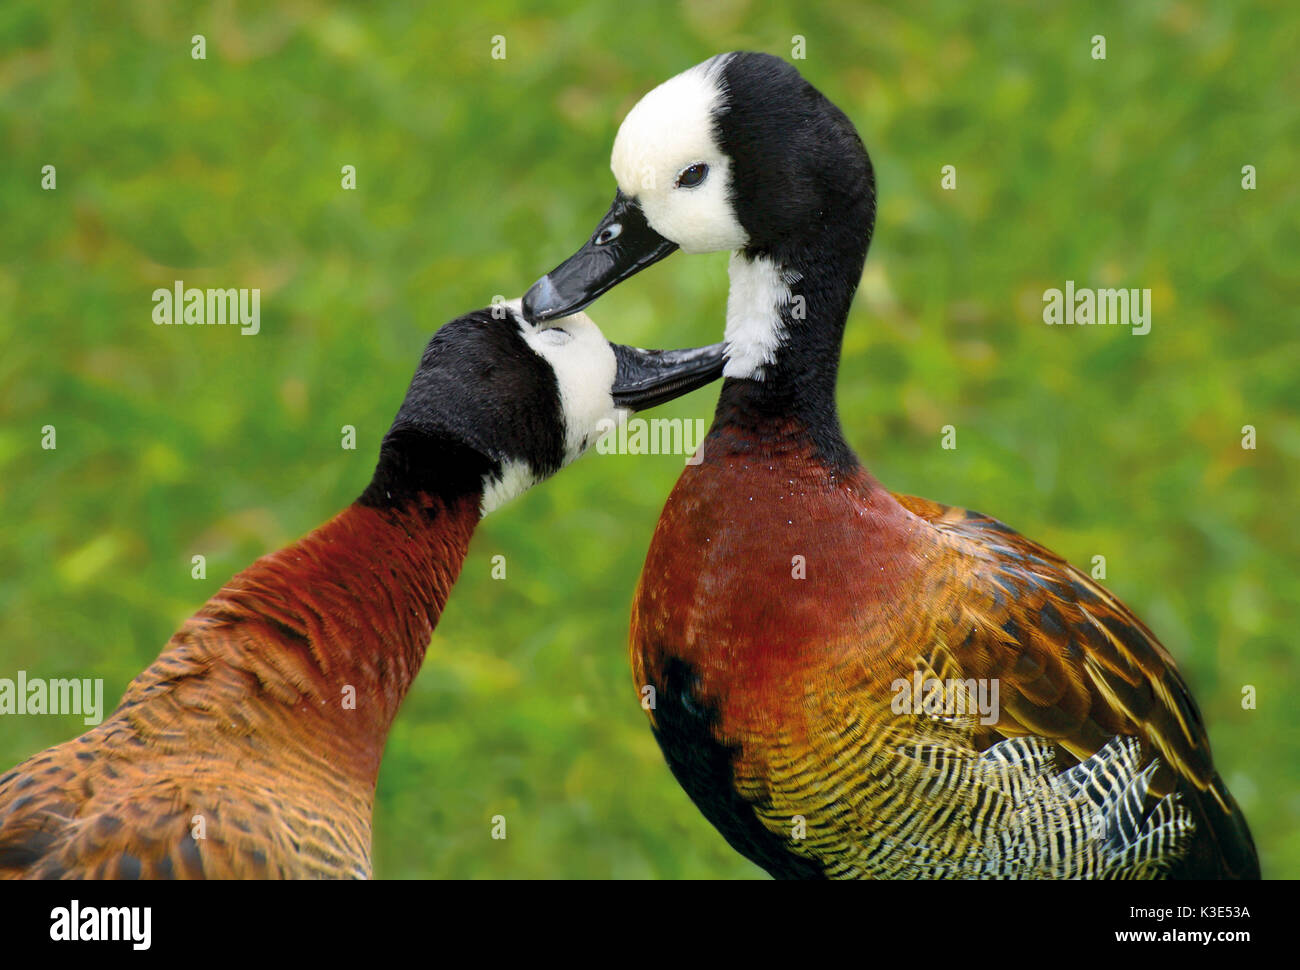 Brazil, Iguaçu national park, couple of white-faced ducks with the mutual plumage cleaning - Stock Image